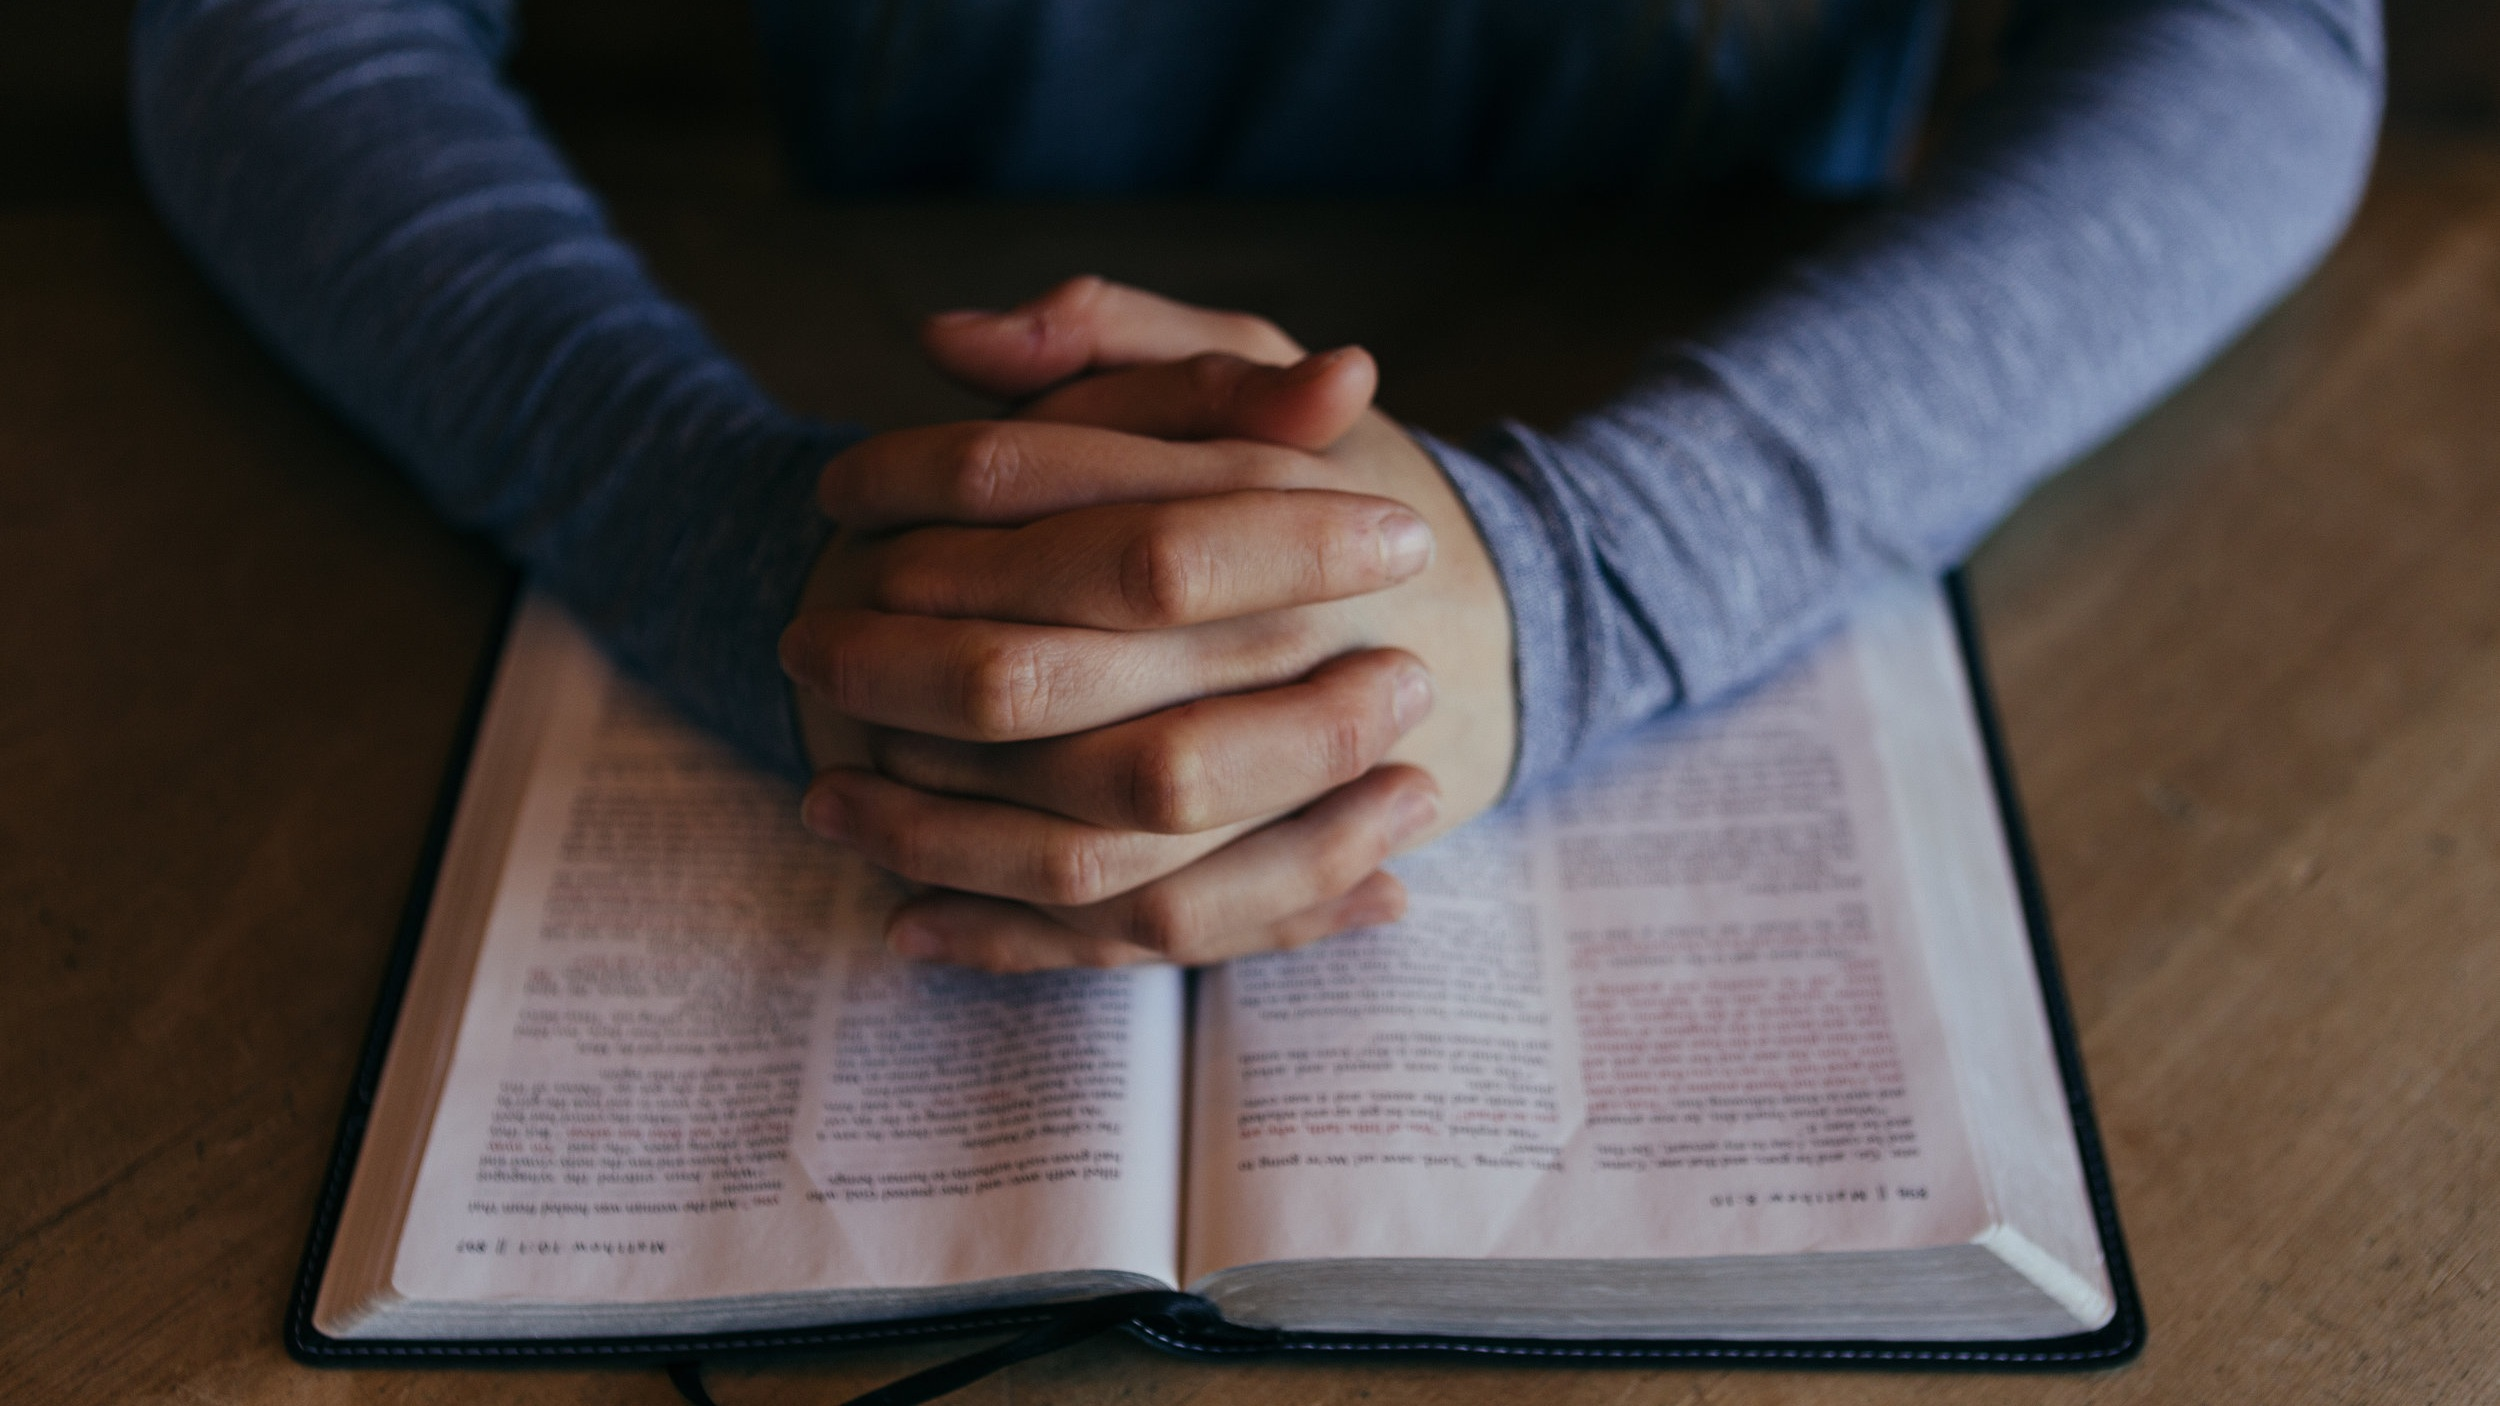 Bible Reading Plan - There comes a point in all of our walks with Jesus where we want to read and know more of his Word. Below is a great Bible reading plan to get you started.